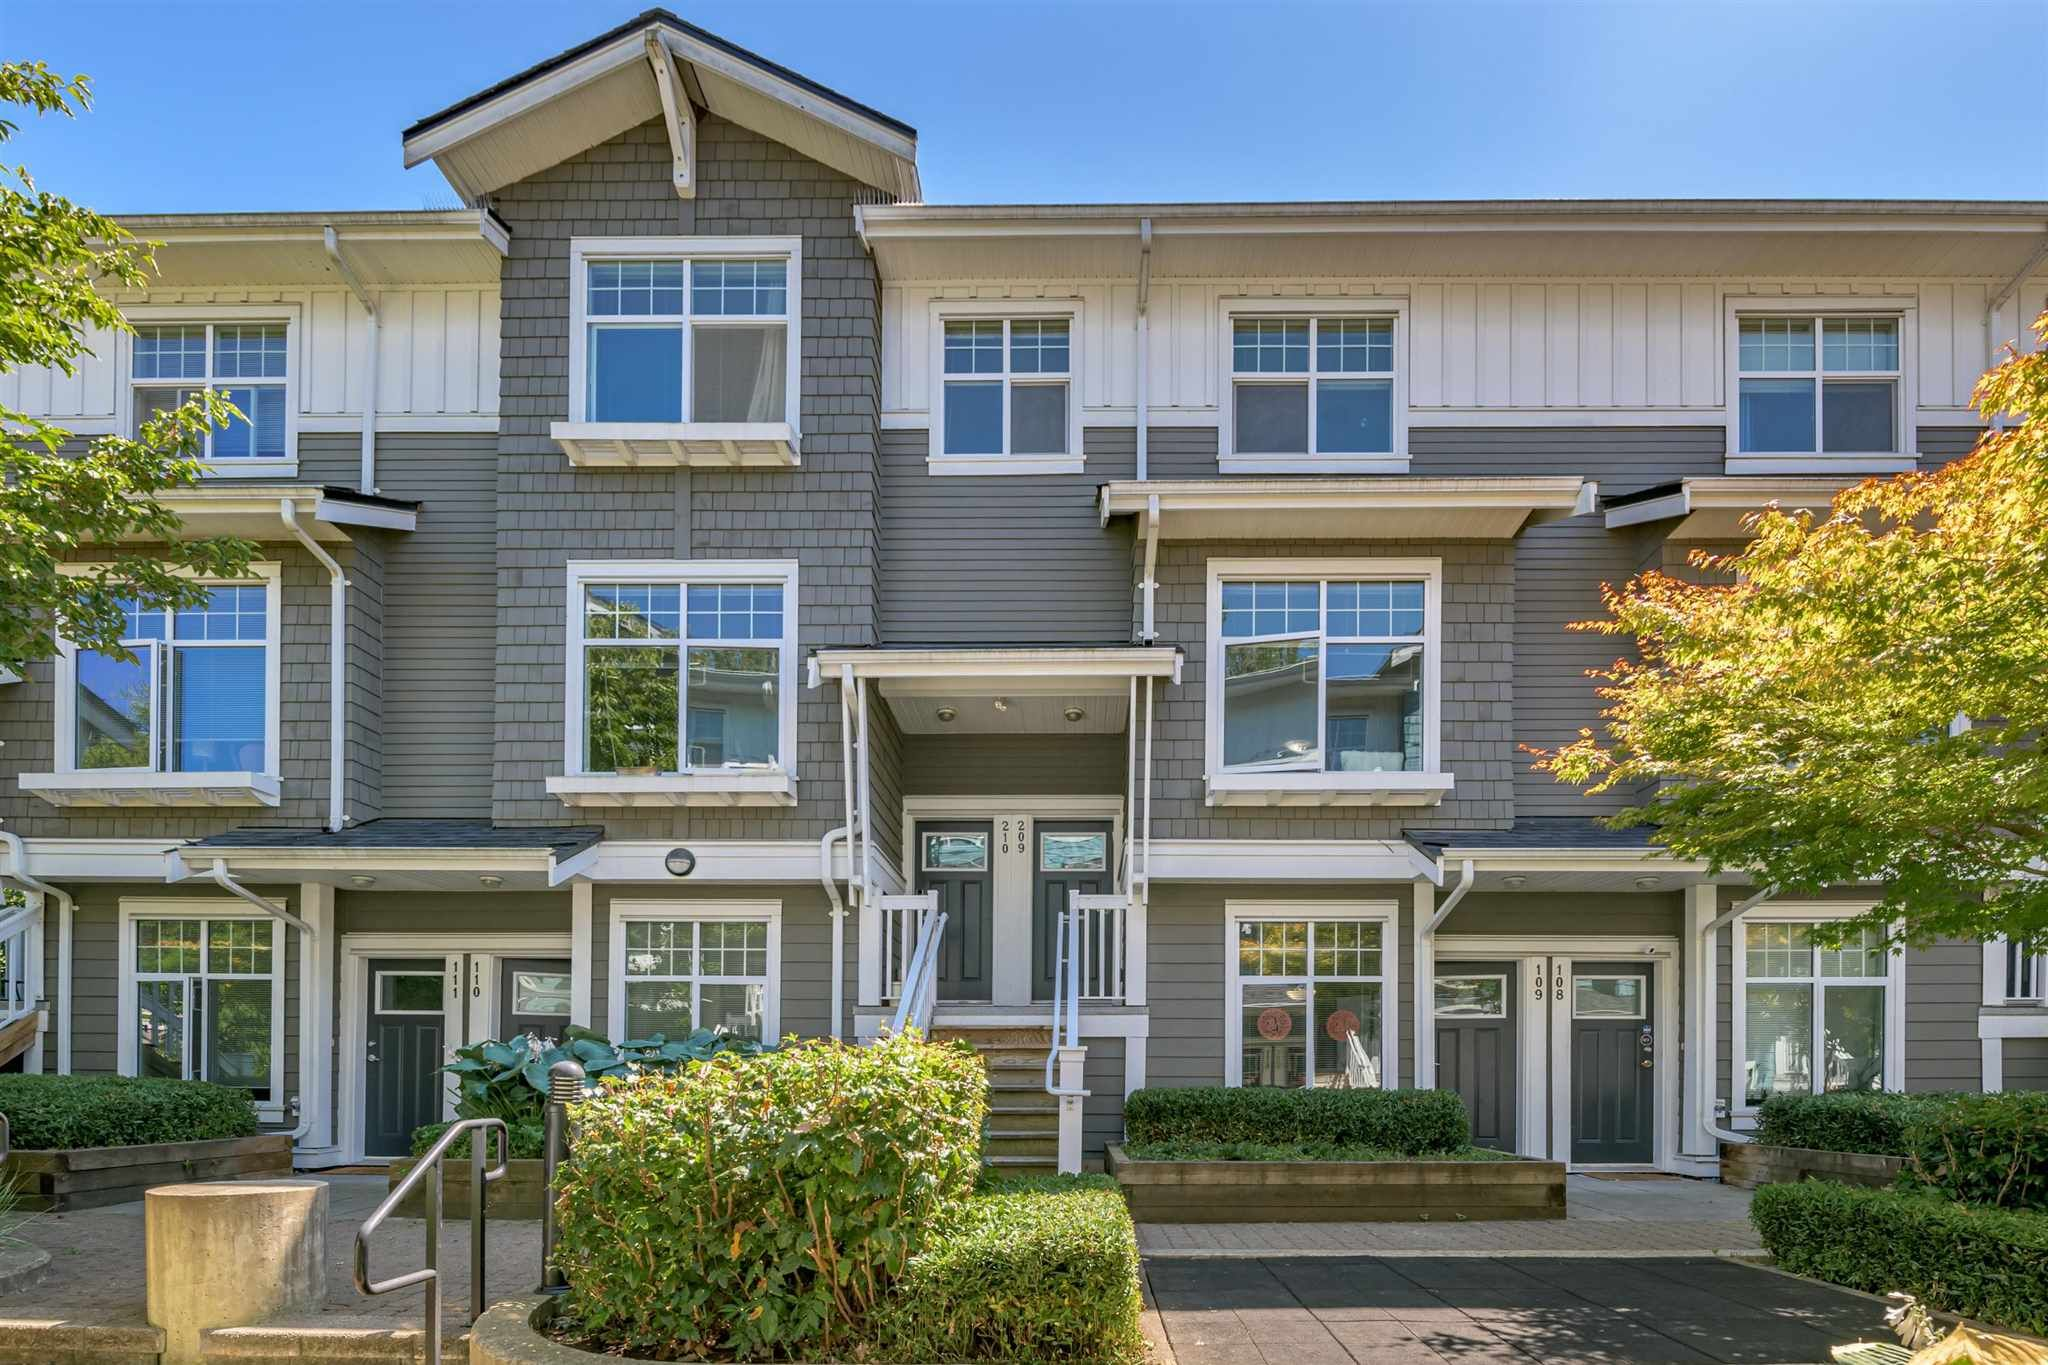 """Main Photo: 209 4255 SARDIS Street in Burnaby: Central Park BS Townhouse for sale in """"Paddington Mews"""" (Burnaby South)  : MLS®# R2602825"""